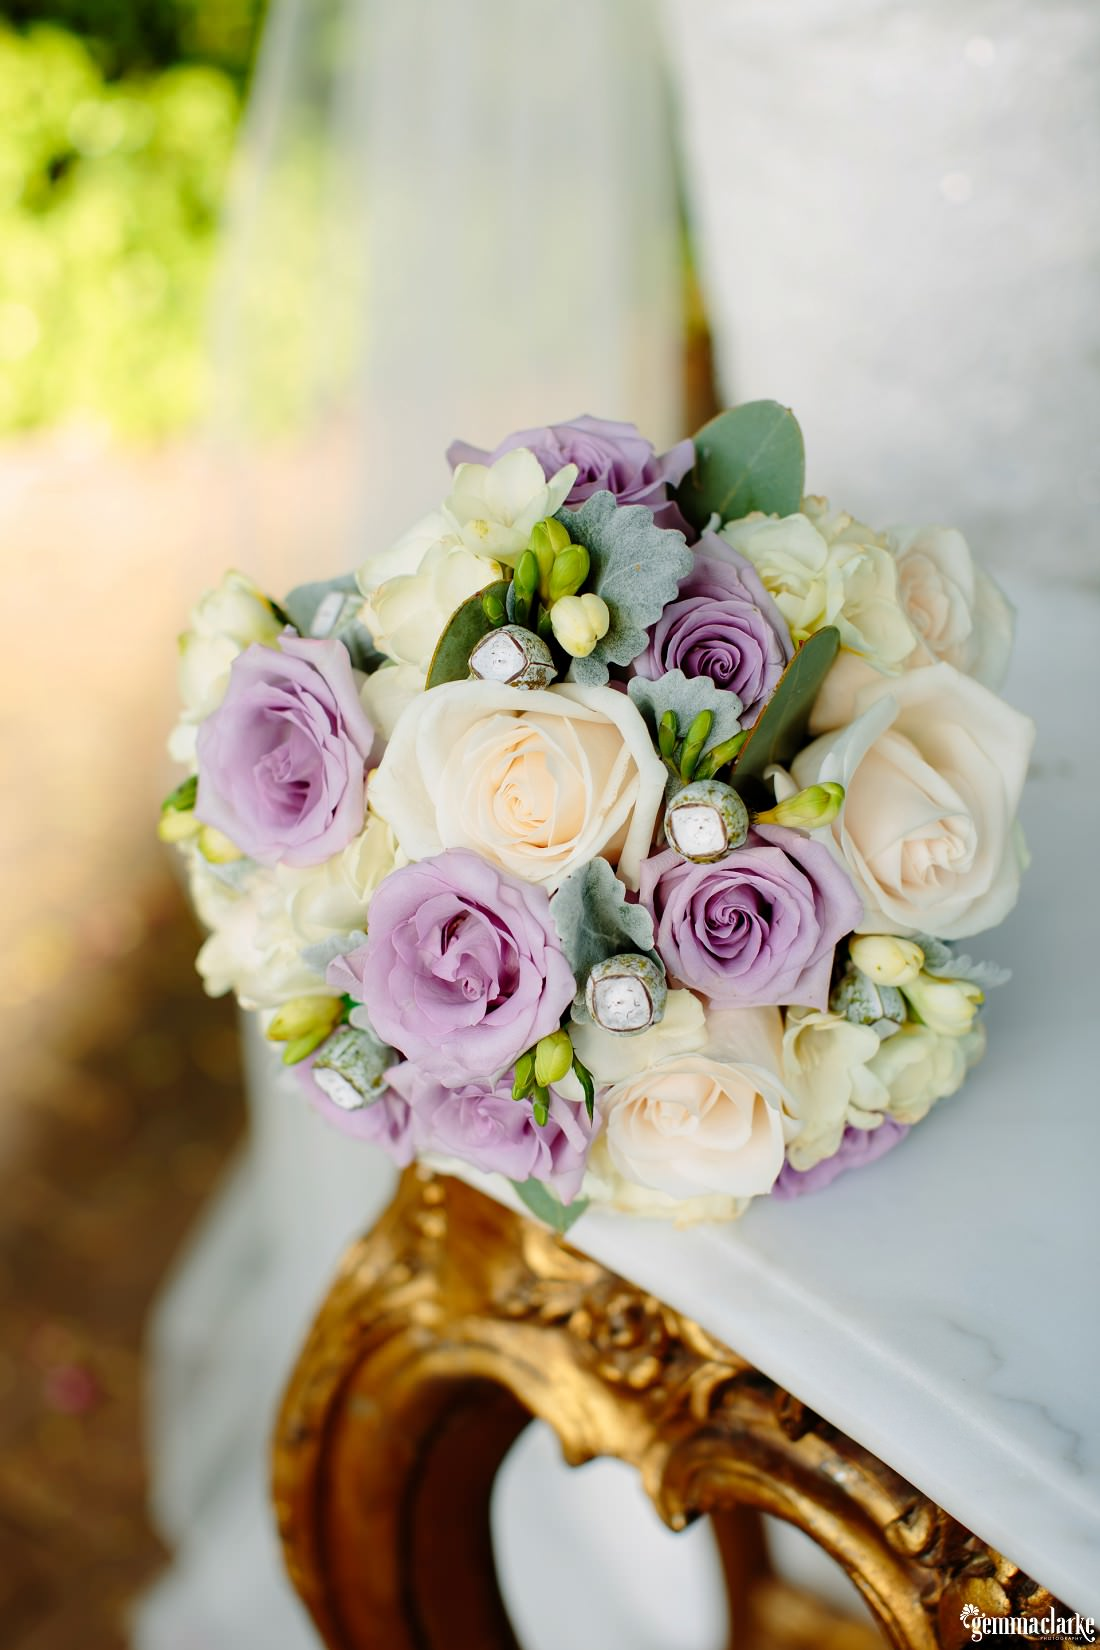 A close up of a bridal bouquet on a marble table